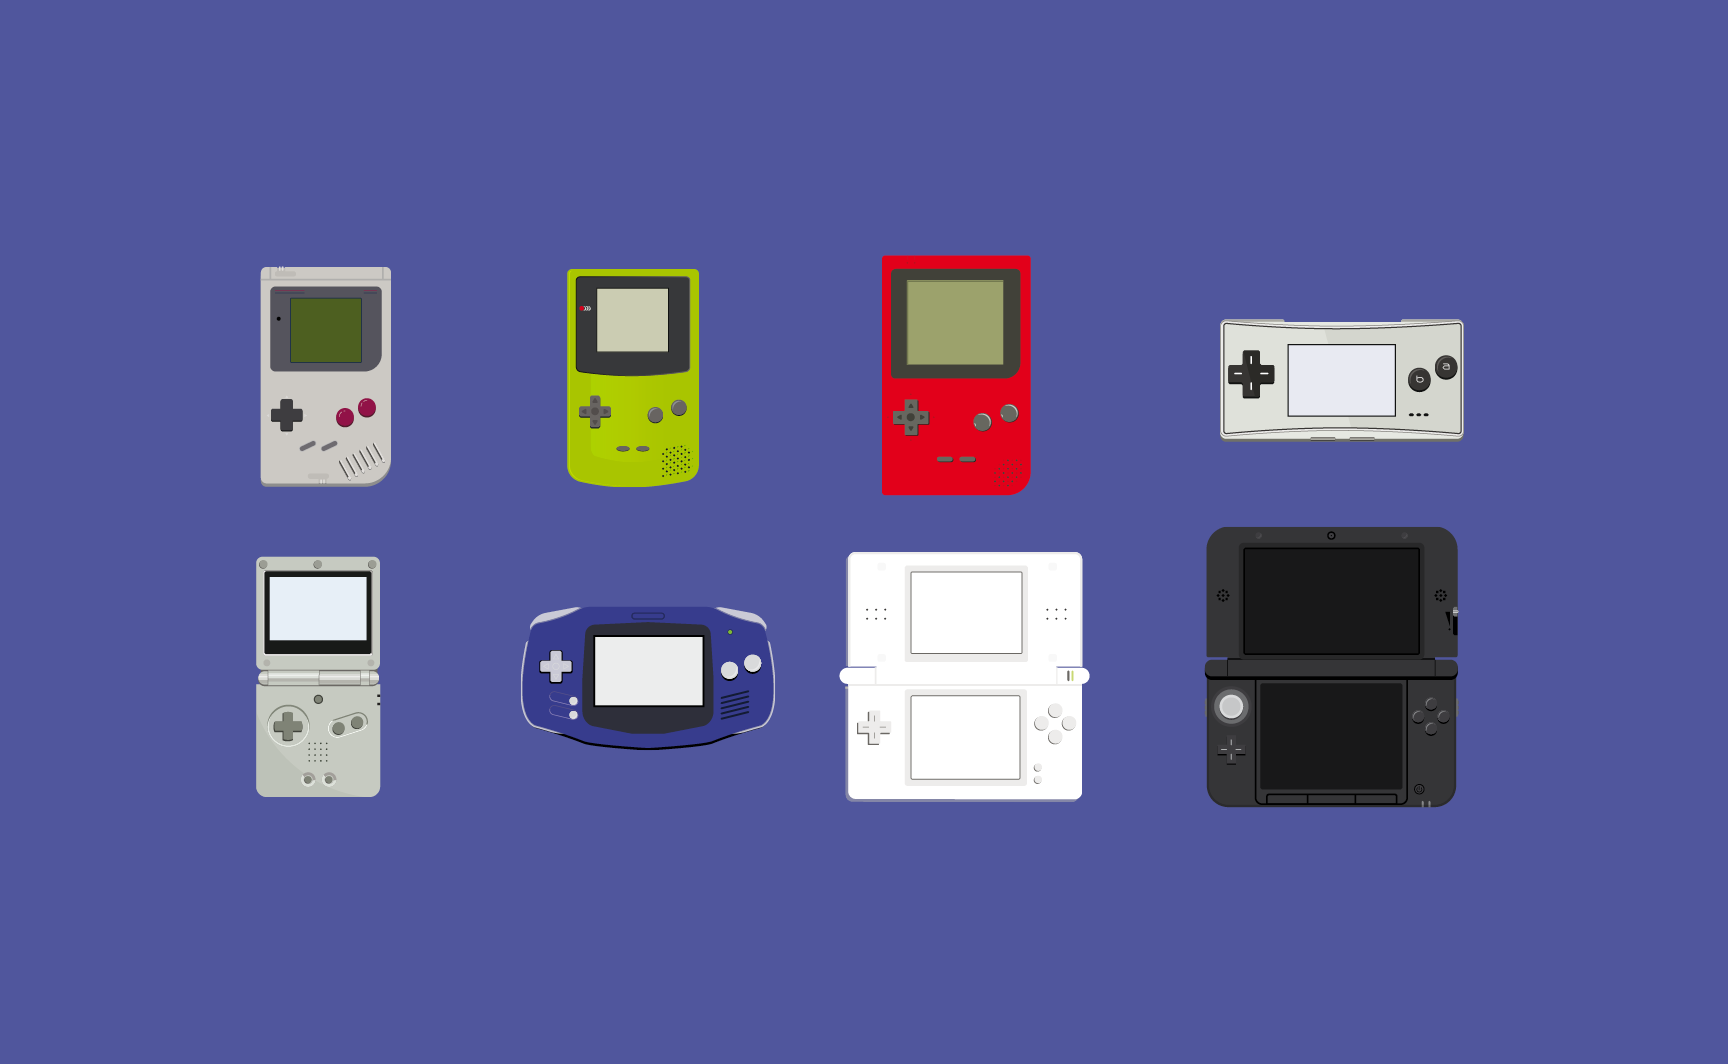 game-controllers2.png